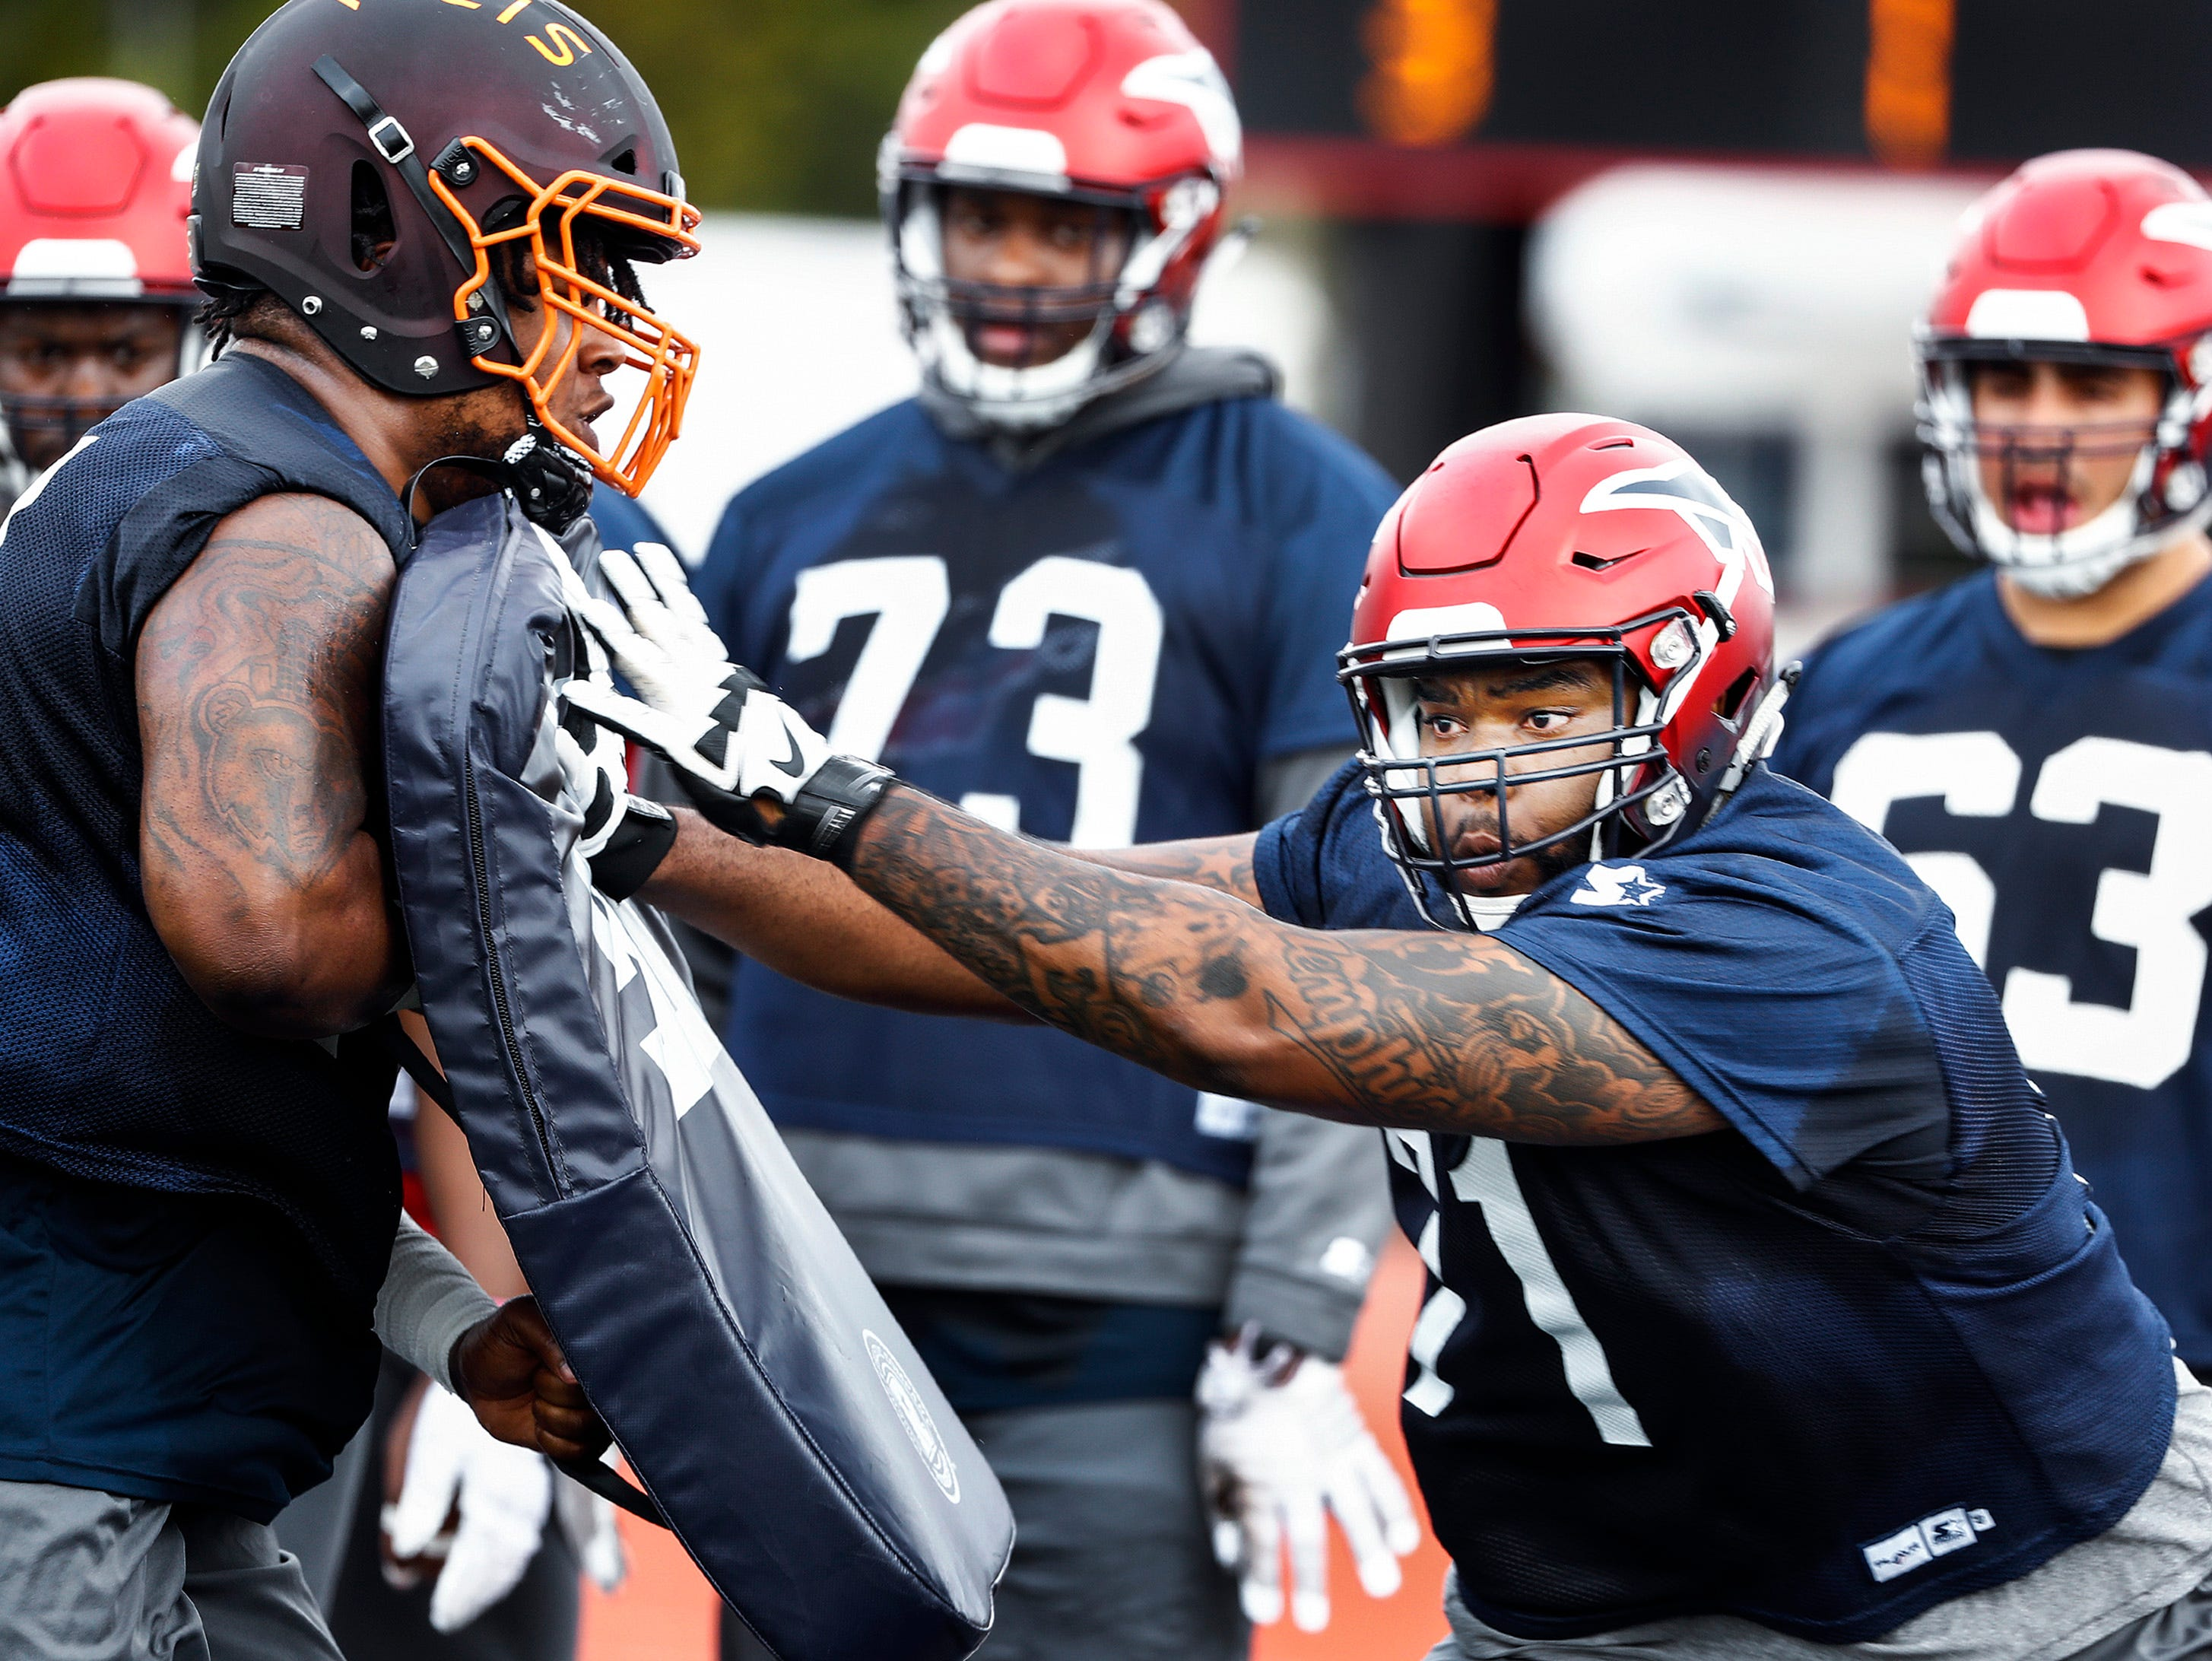 Memphis Express offensive lineman Christian Morris (right) during training camp in San Antonio, Texas.